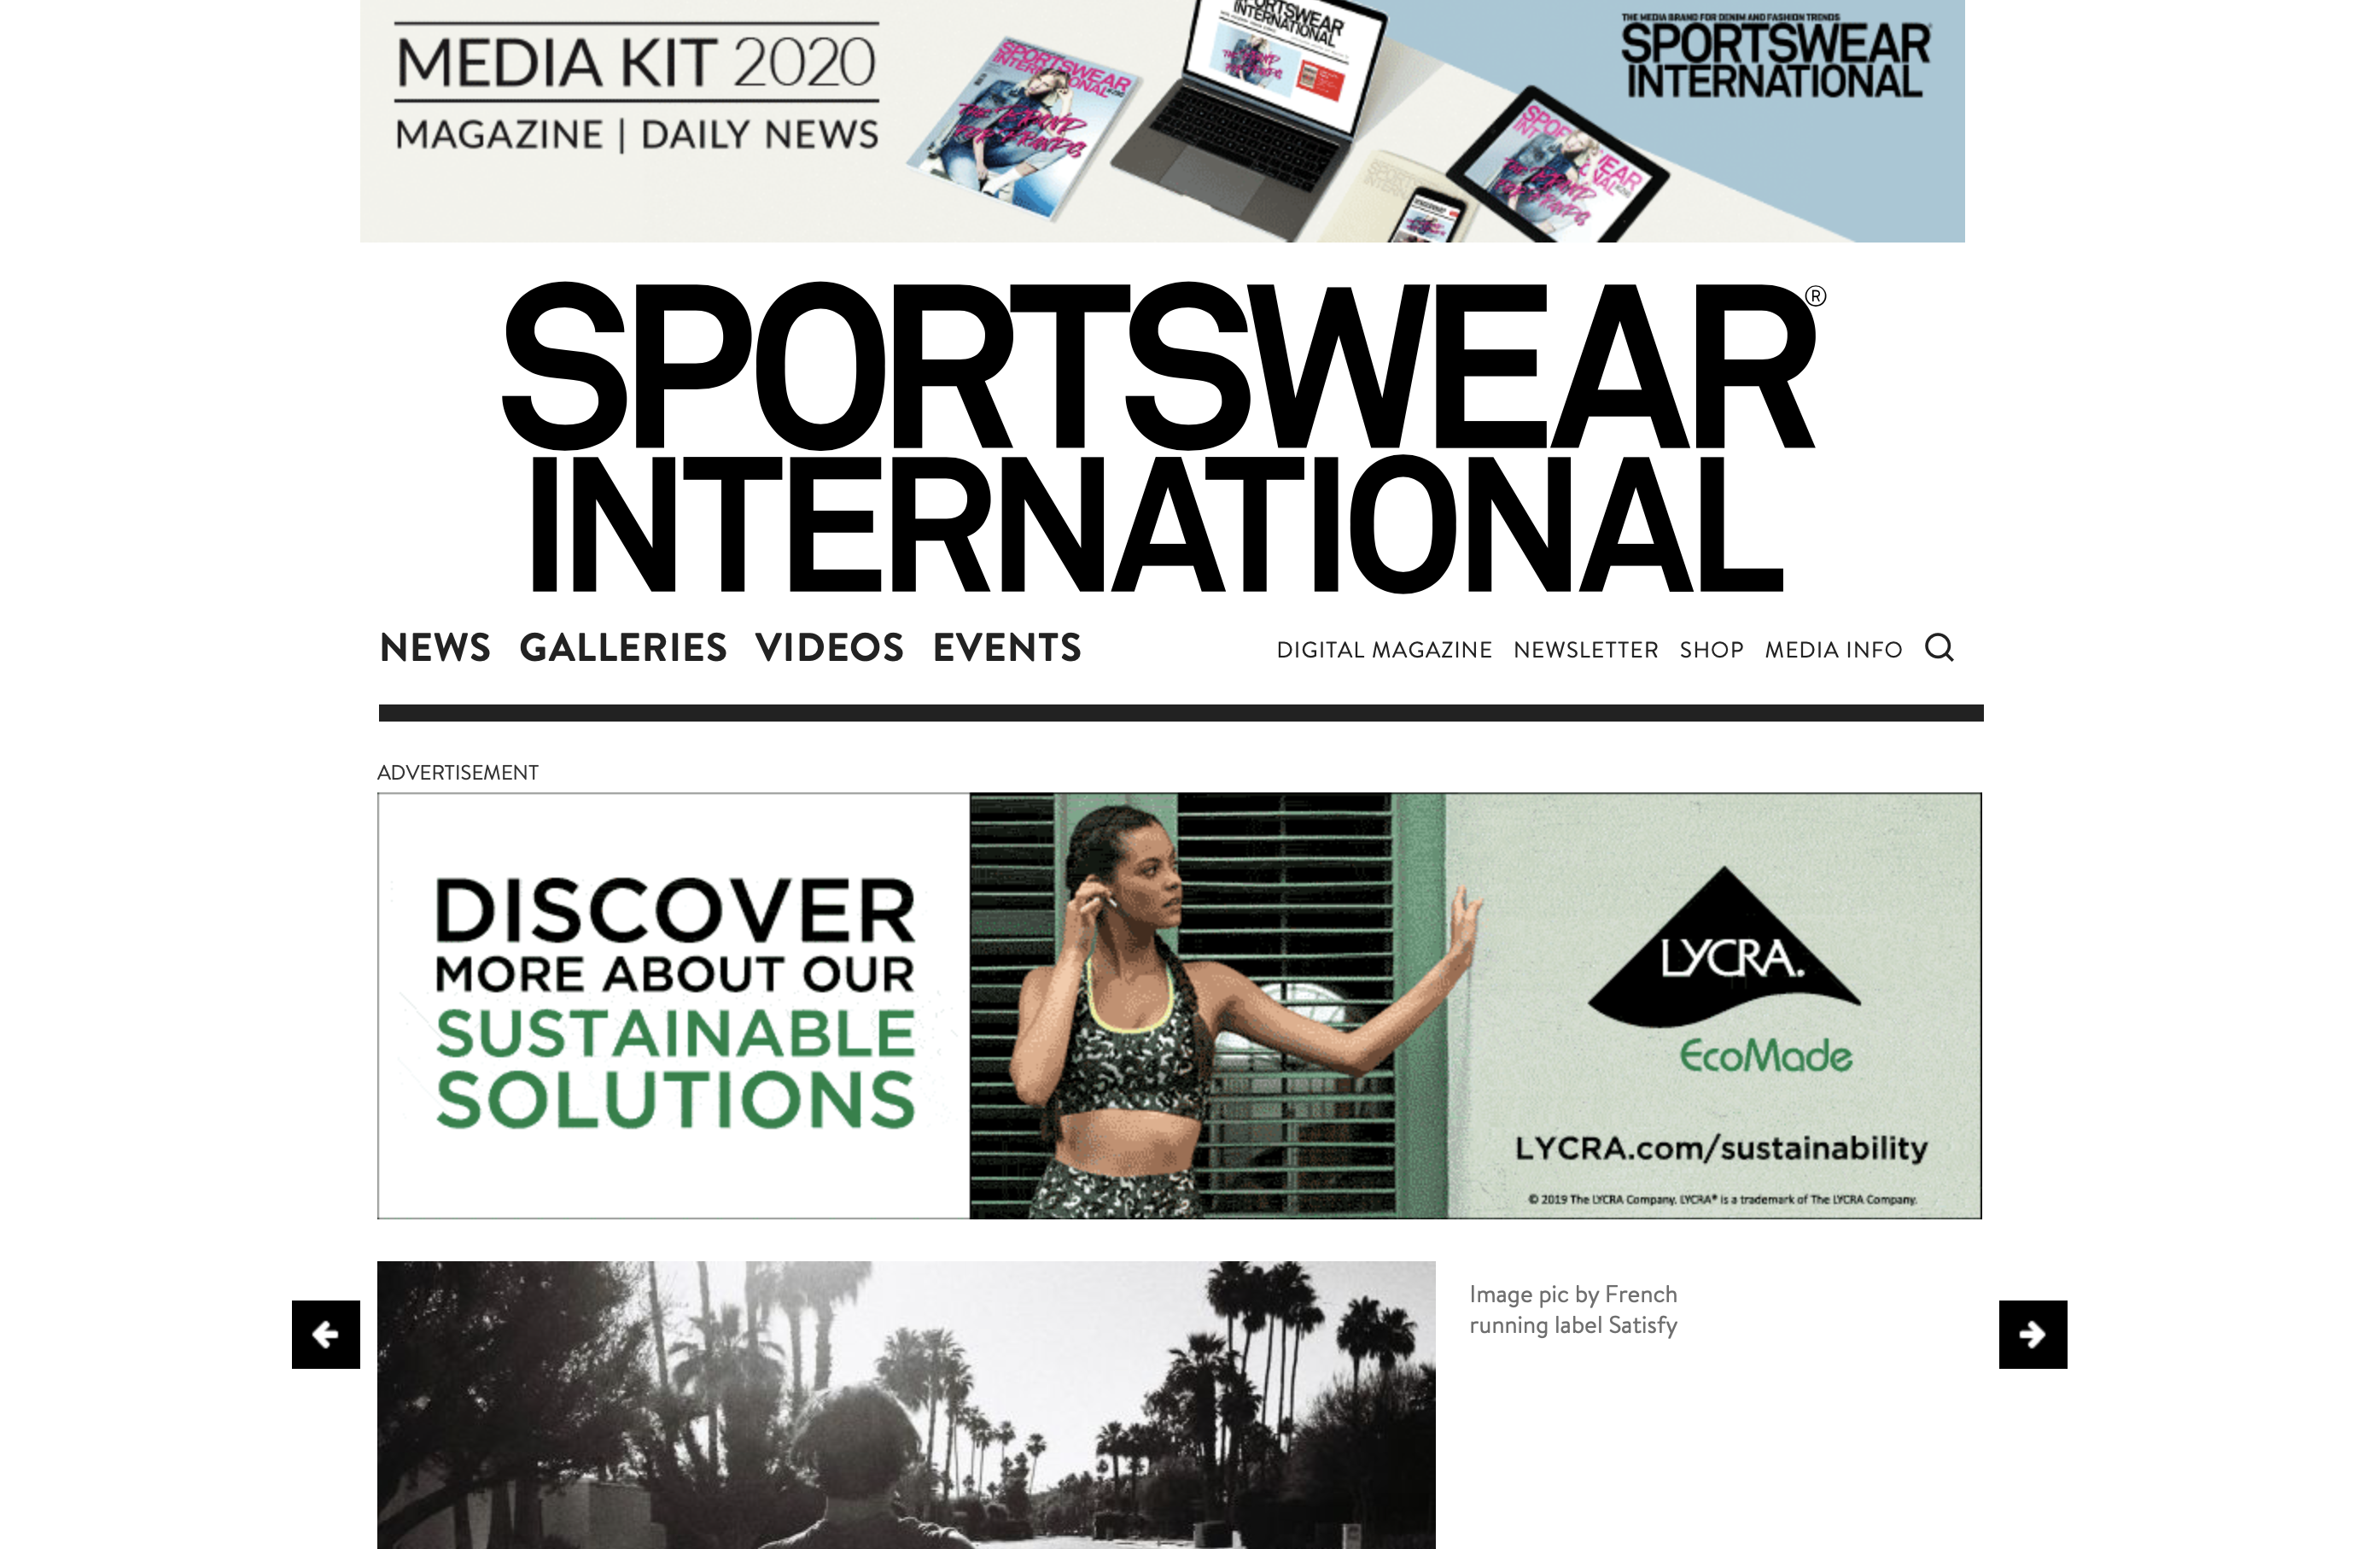 Sportswear International - Why running is the new cool - Doxa Run is featured.